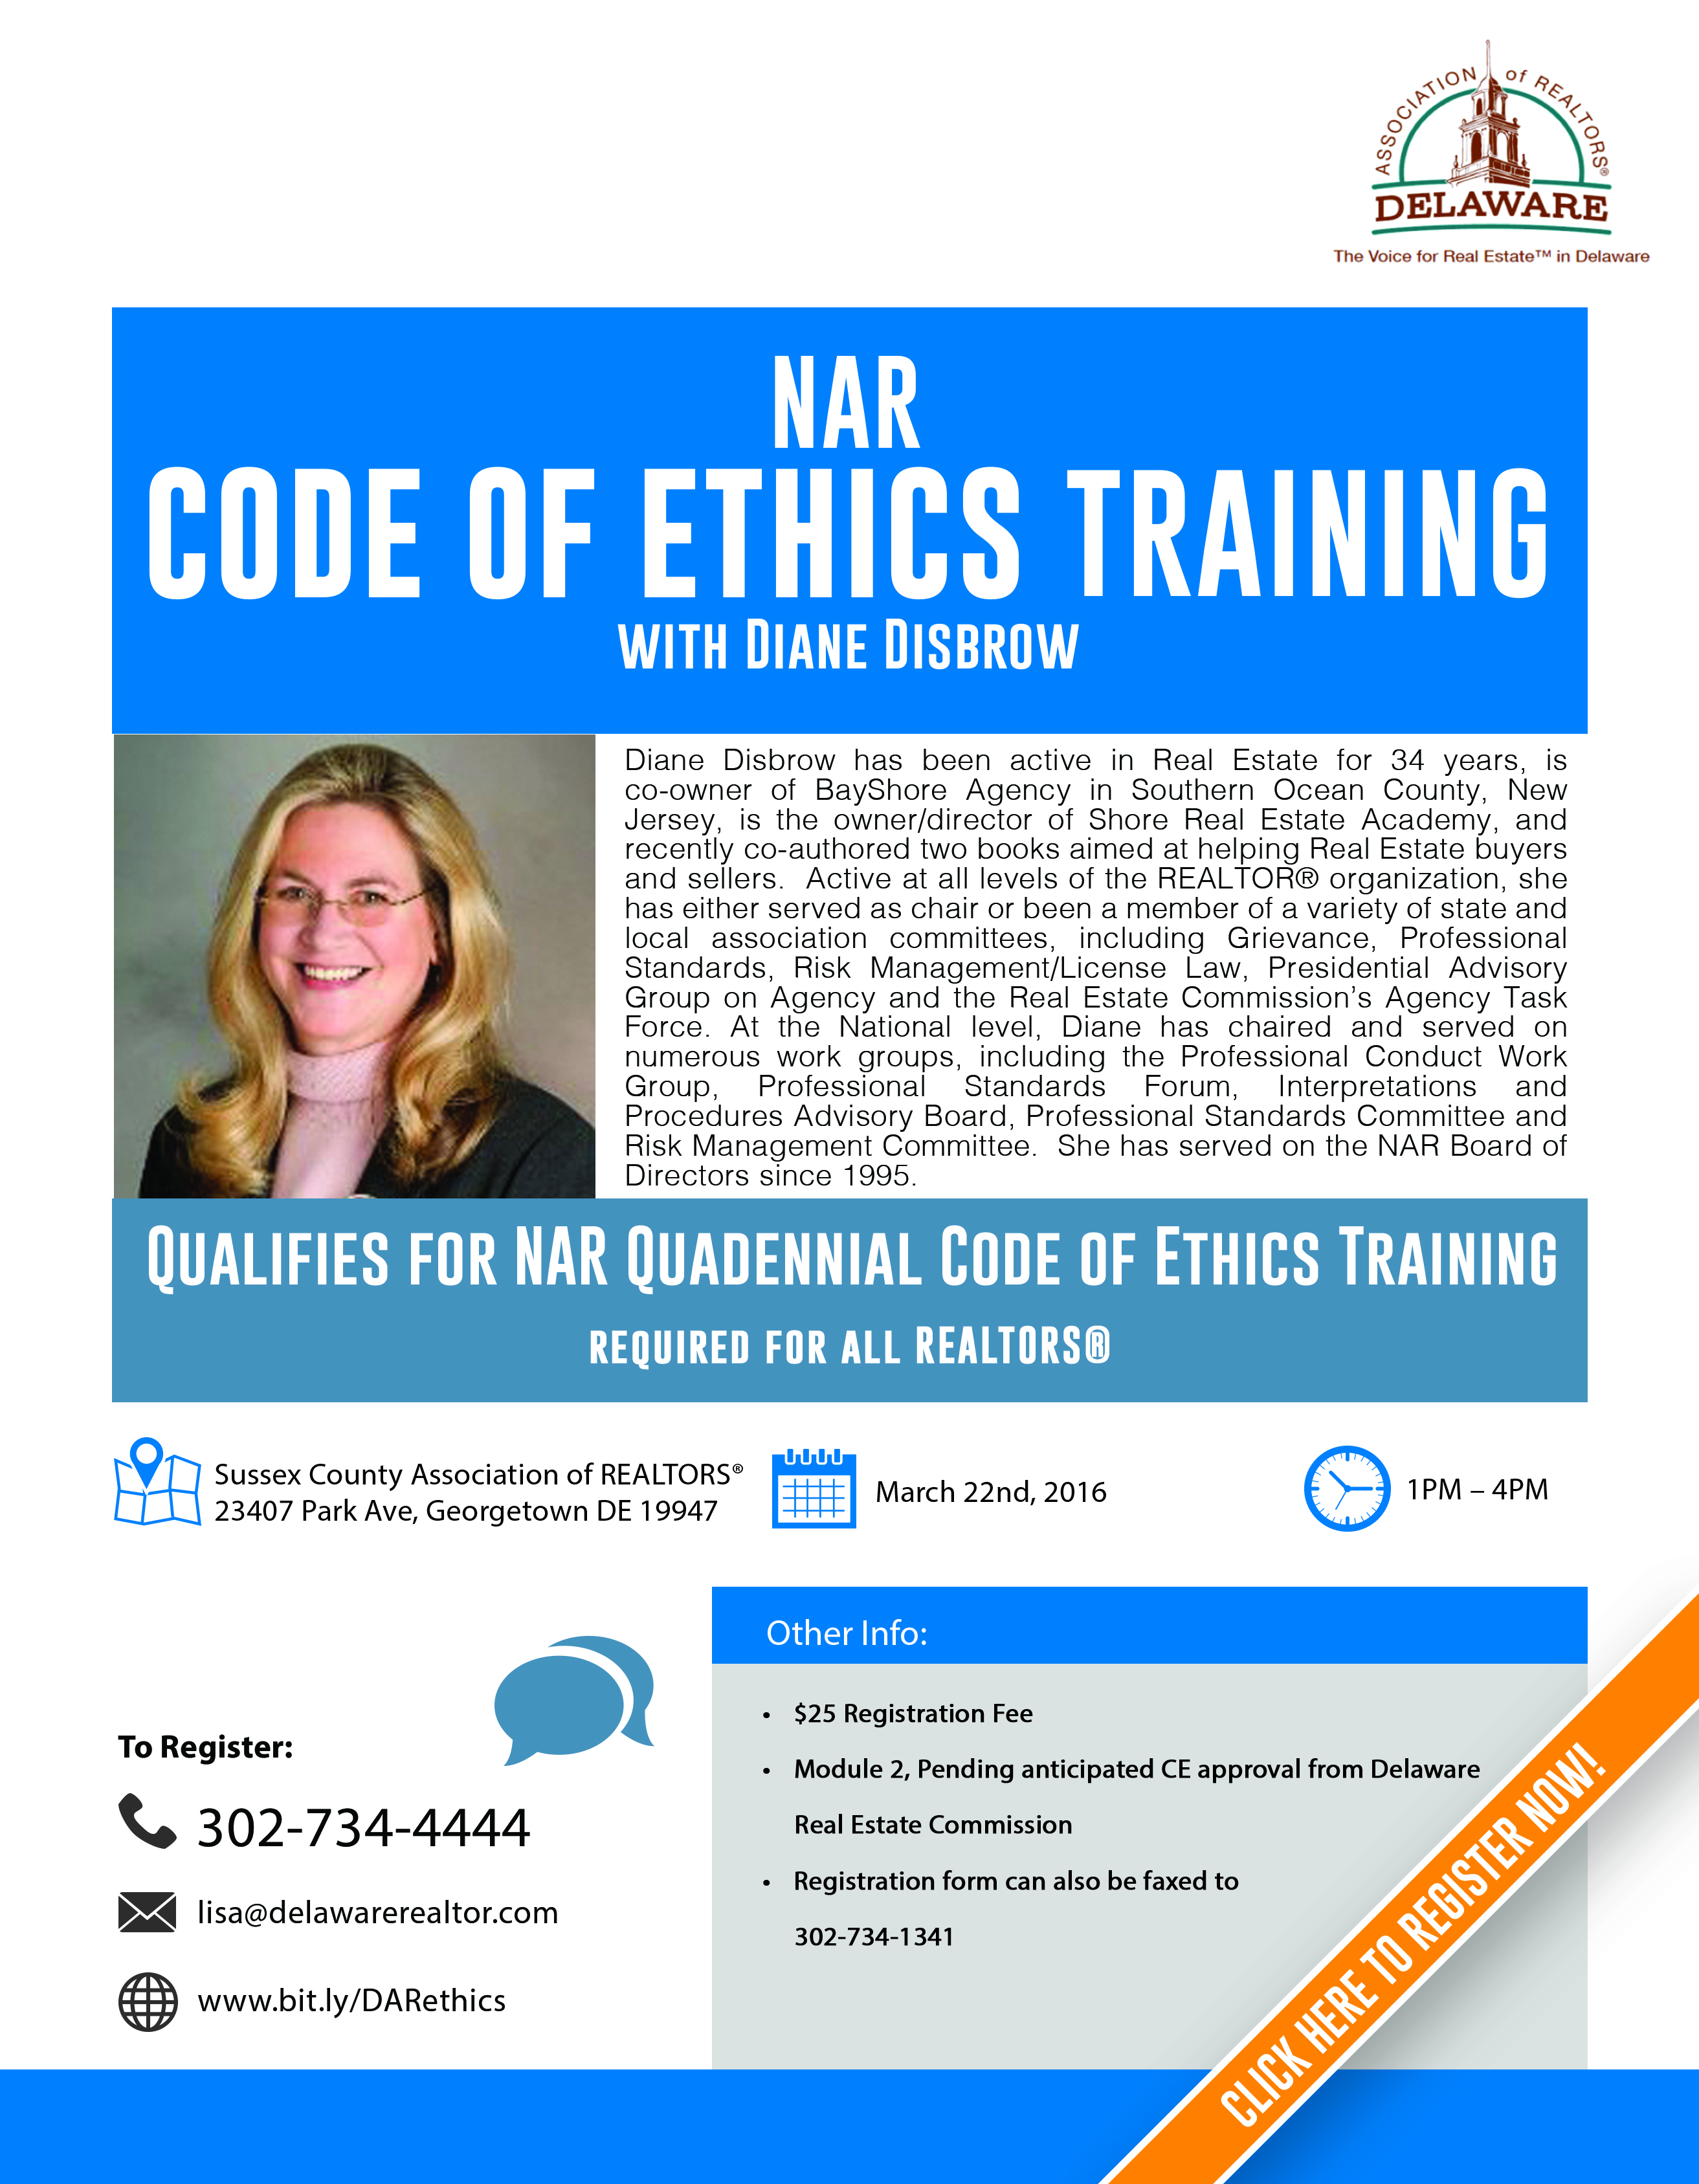 the nar code of ethics Welcome to realtor® code of ethics training realtor® members must complete two and a half (25) hours of ethics training, meeting specific learning objectives and criteria, within two (2) year cycles mandatory ethics training for realtor® members was first established by the nar board of directors at.